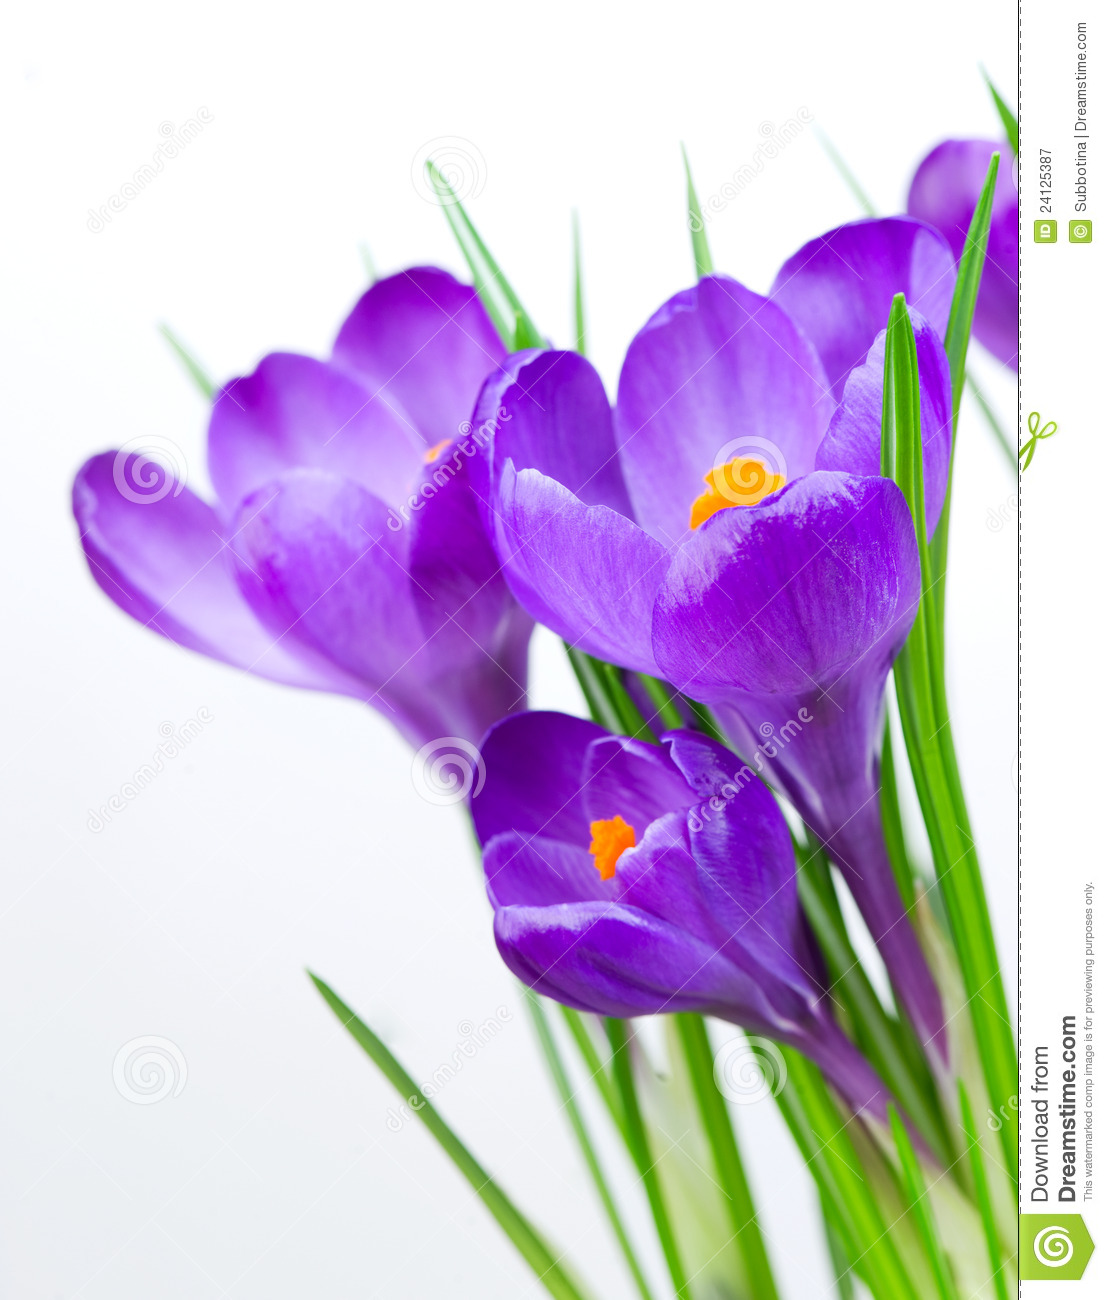 Crocus spring flowers stock image image of design growing 24125387 crocus spring flowers design growing mightylinksfo